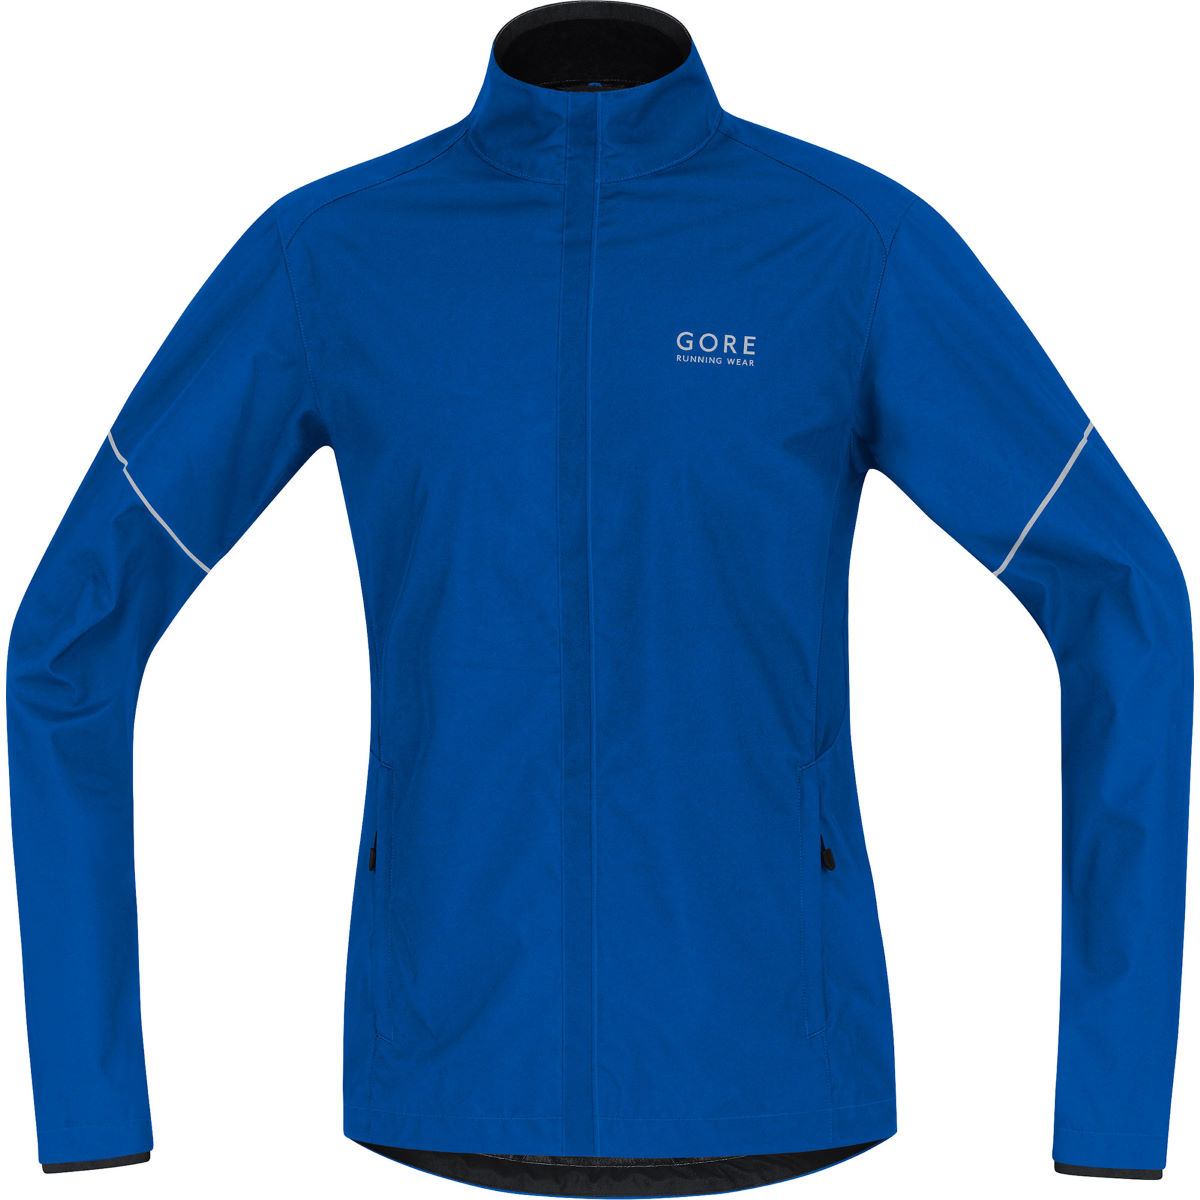 Veste Gore Running Wear WINDSTOPPER® Active Shell Partial (AH16) - S Brilliant Blue Vestes de running coupe-vent